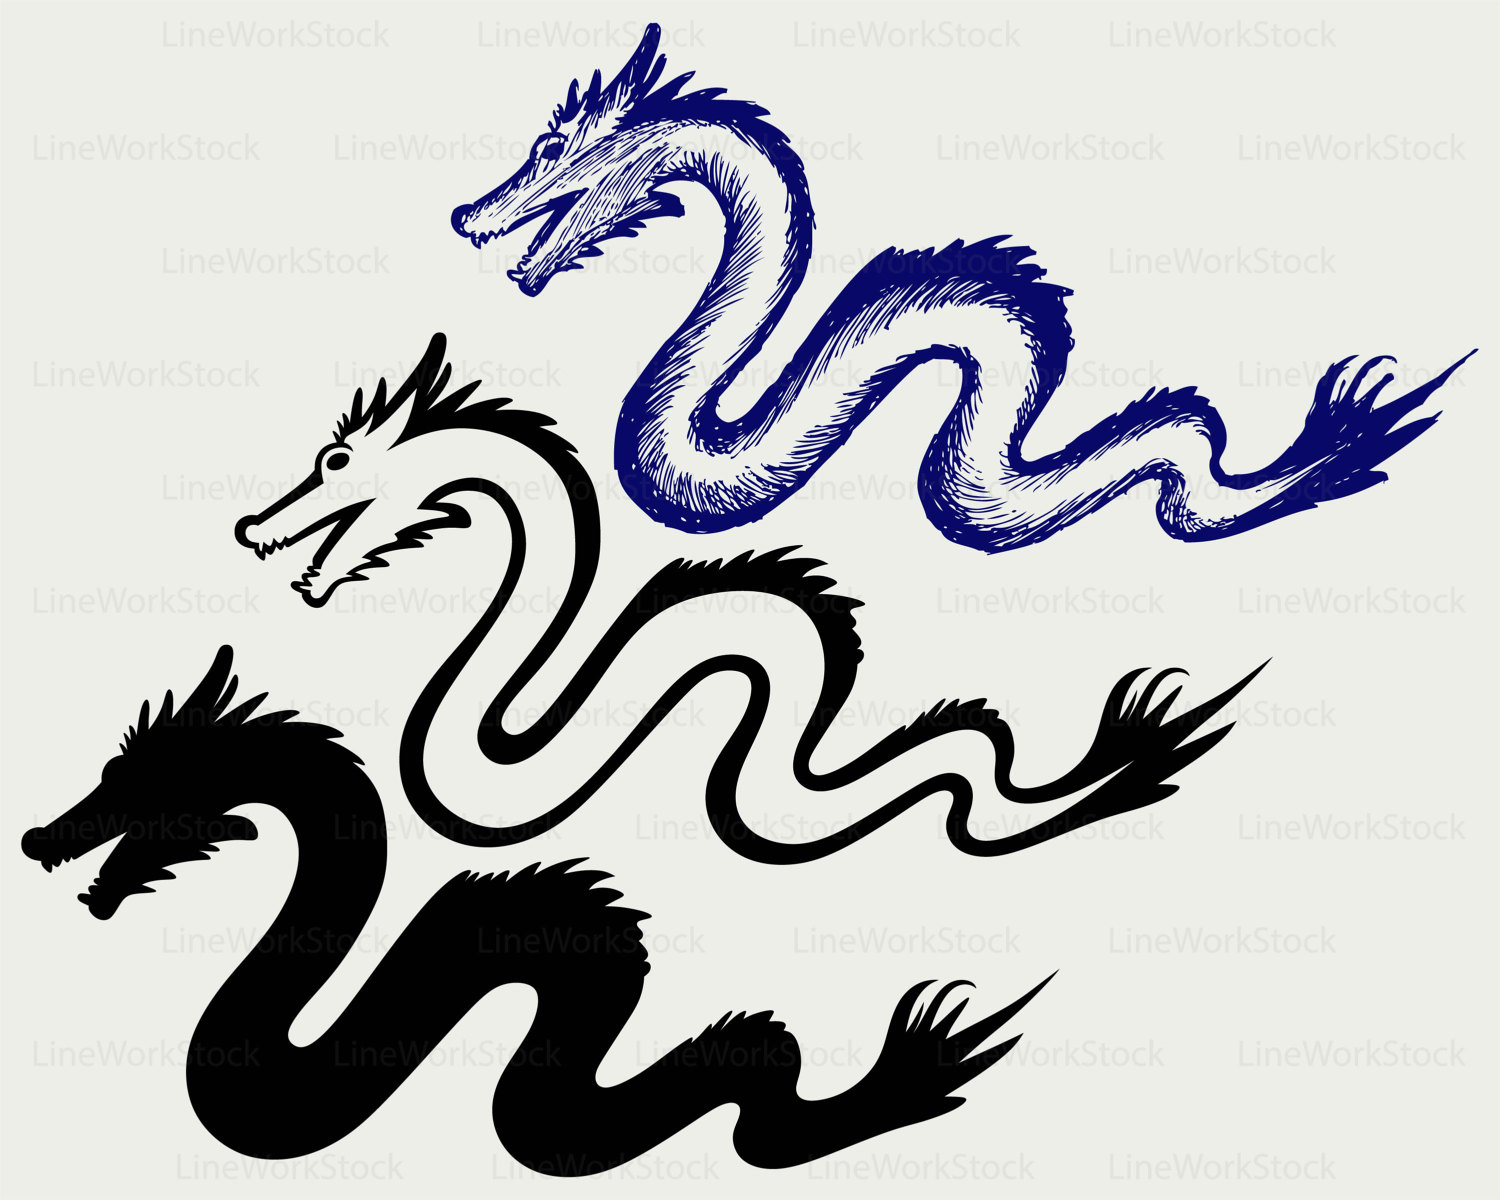 1500x1200 Chinese Dragon Svgdragon Clipartsnake Svgdragon Silhouette